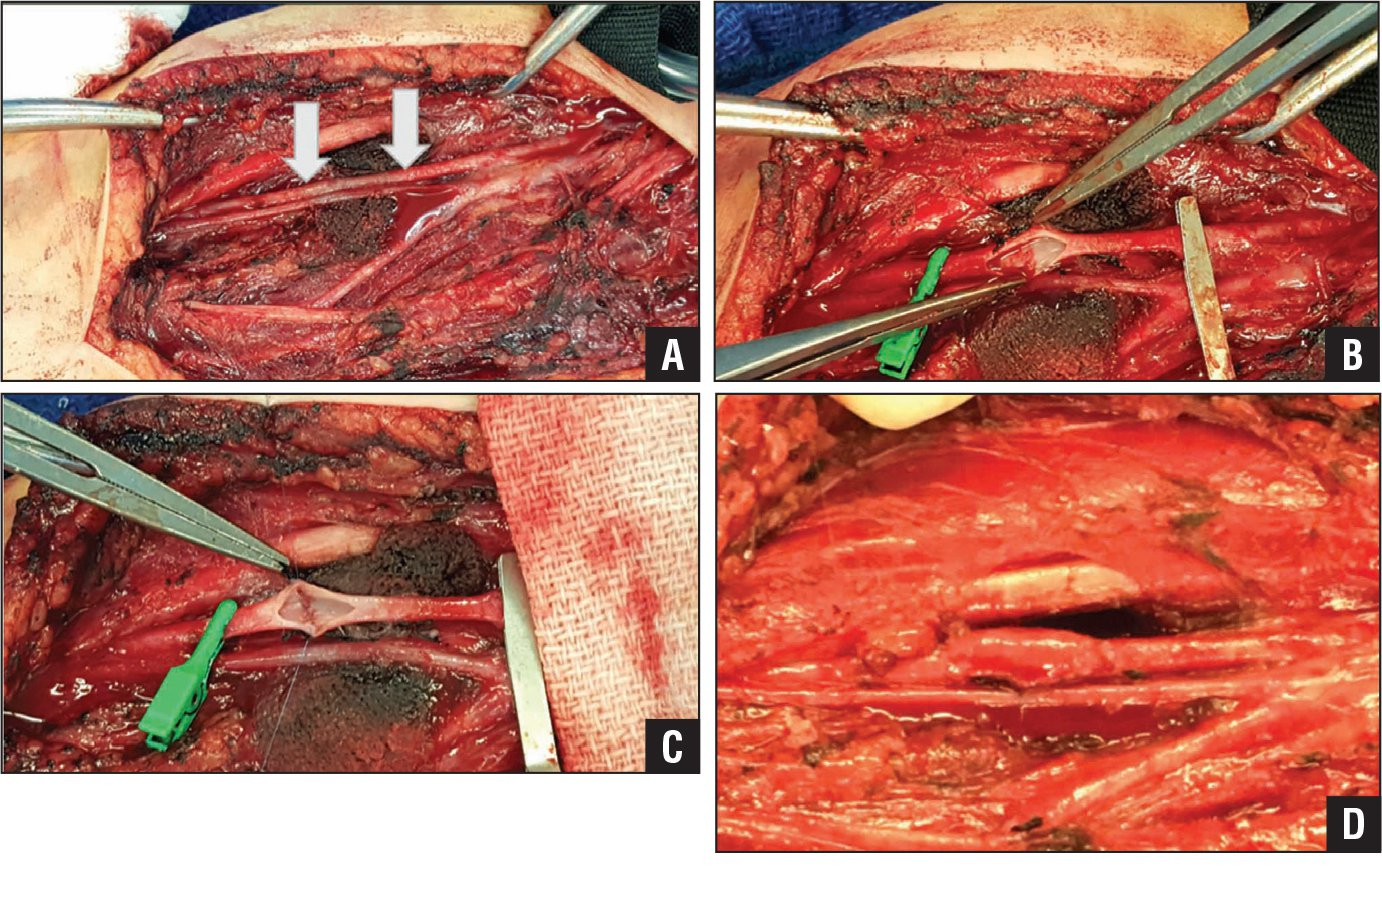 Intraoperative images of the brachial artery repair. Exposure of the brachial artery (arrows) (A). The brachial artery clamped and incised (B). Repair of the intima (C). Basilic vein patch used to repair the brachial artery (D).